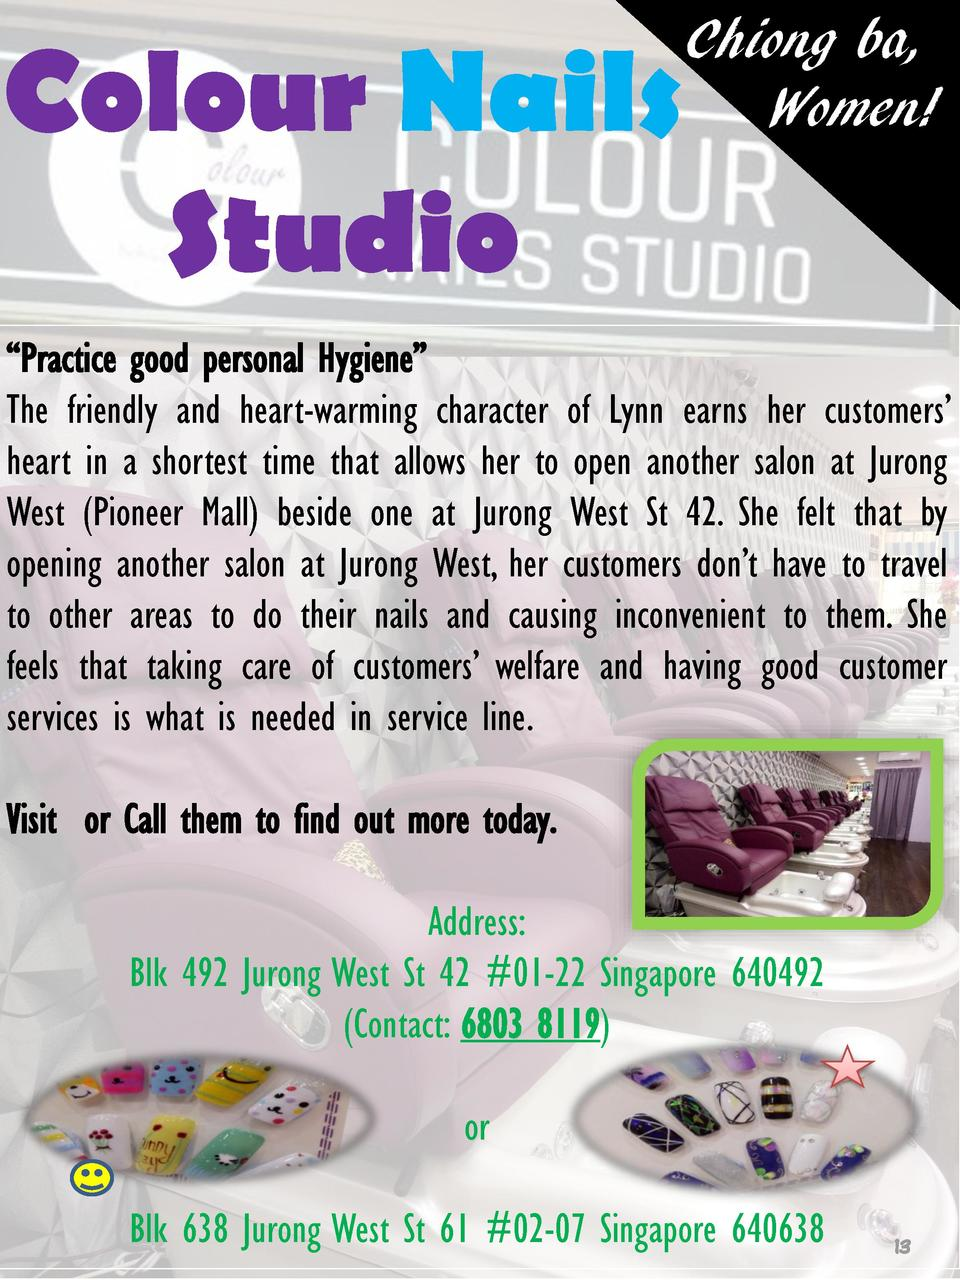 Colour Nails Studio  Chiong ba, Women      Practice good personal Hygiene    The friendly and heart-warming character of L...